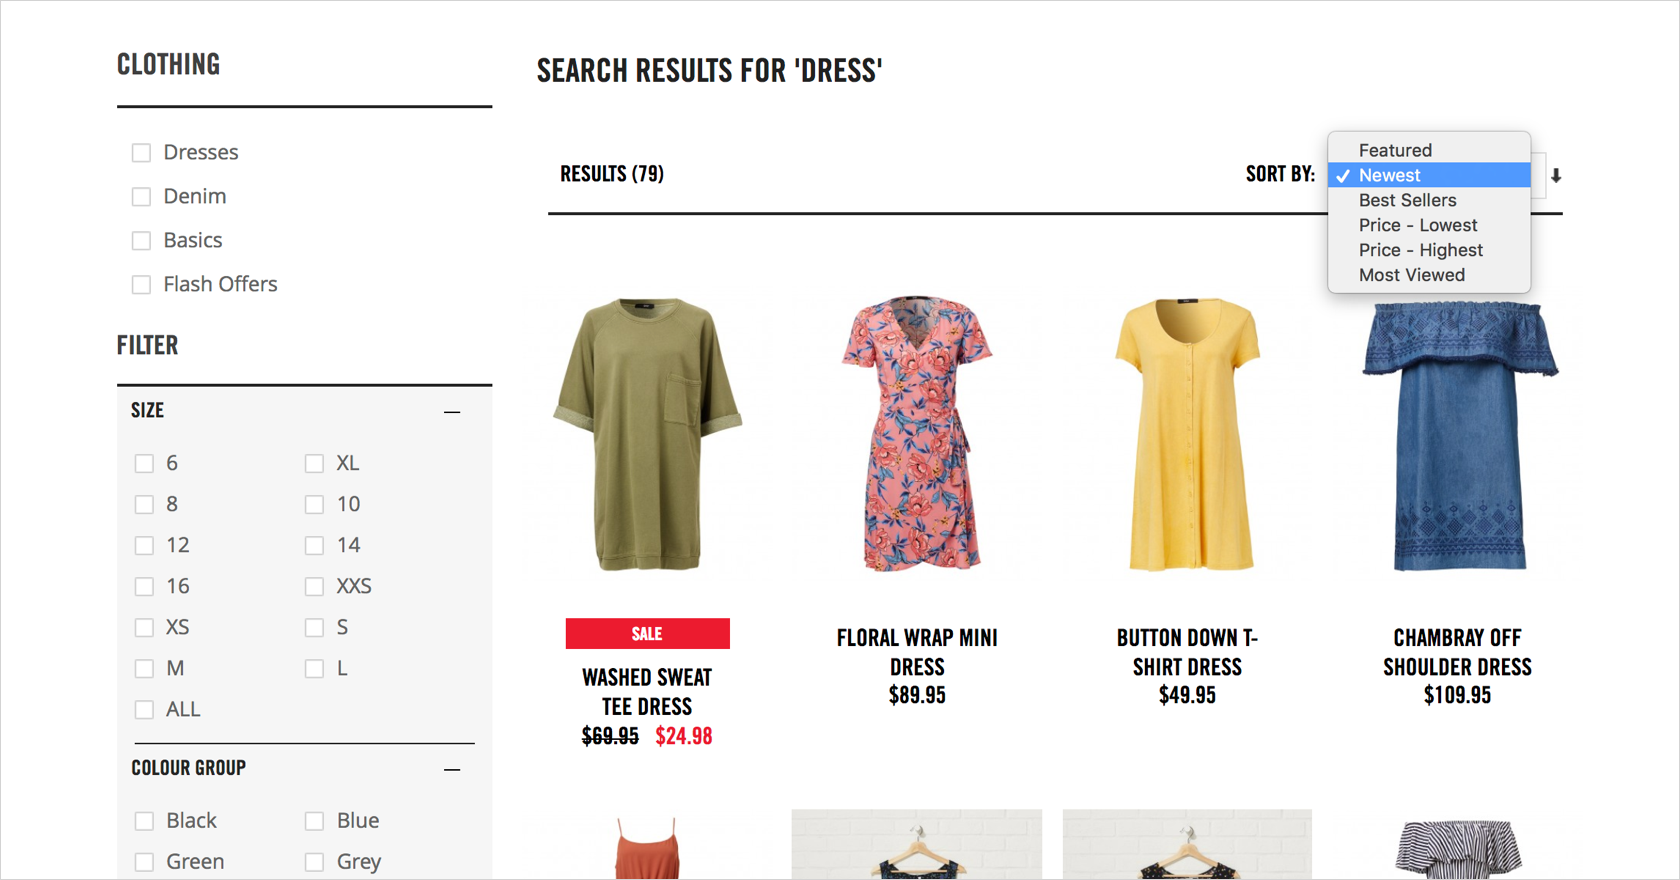 Designing eCommerce websites: filtering search results